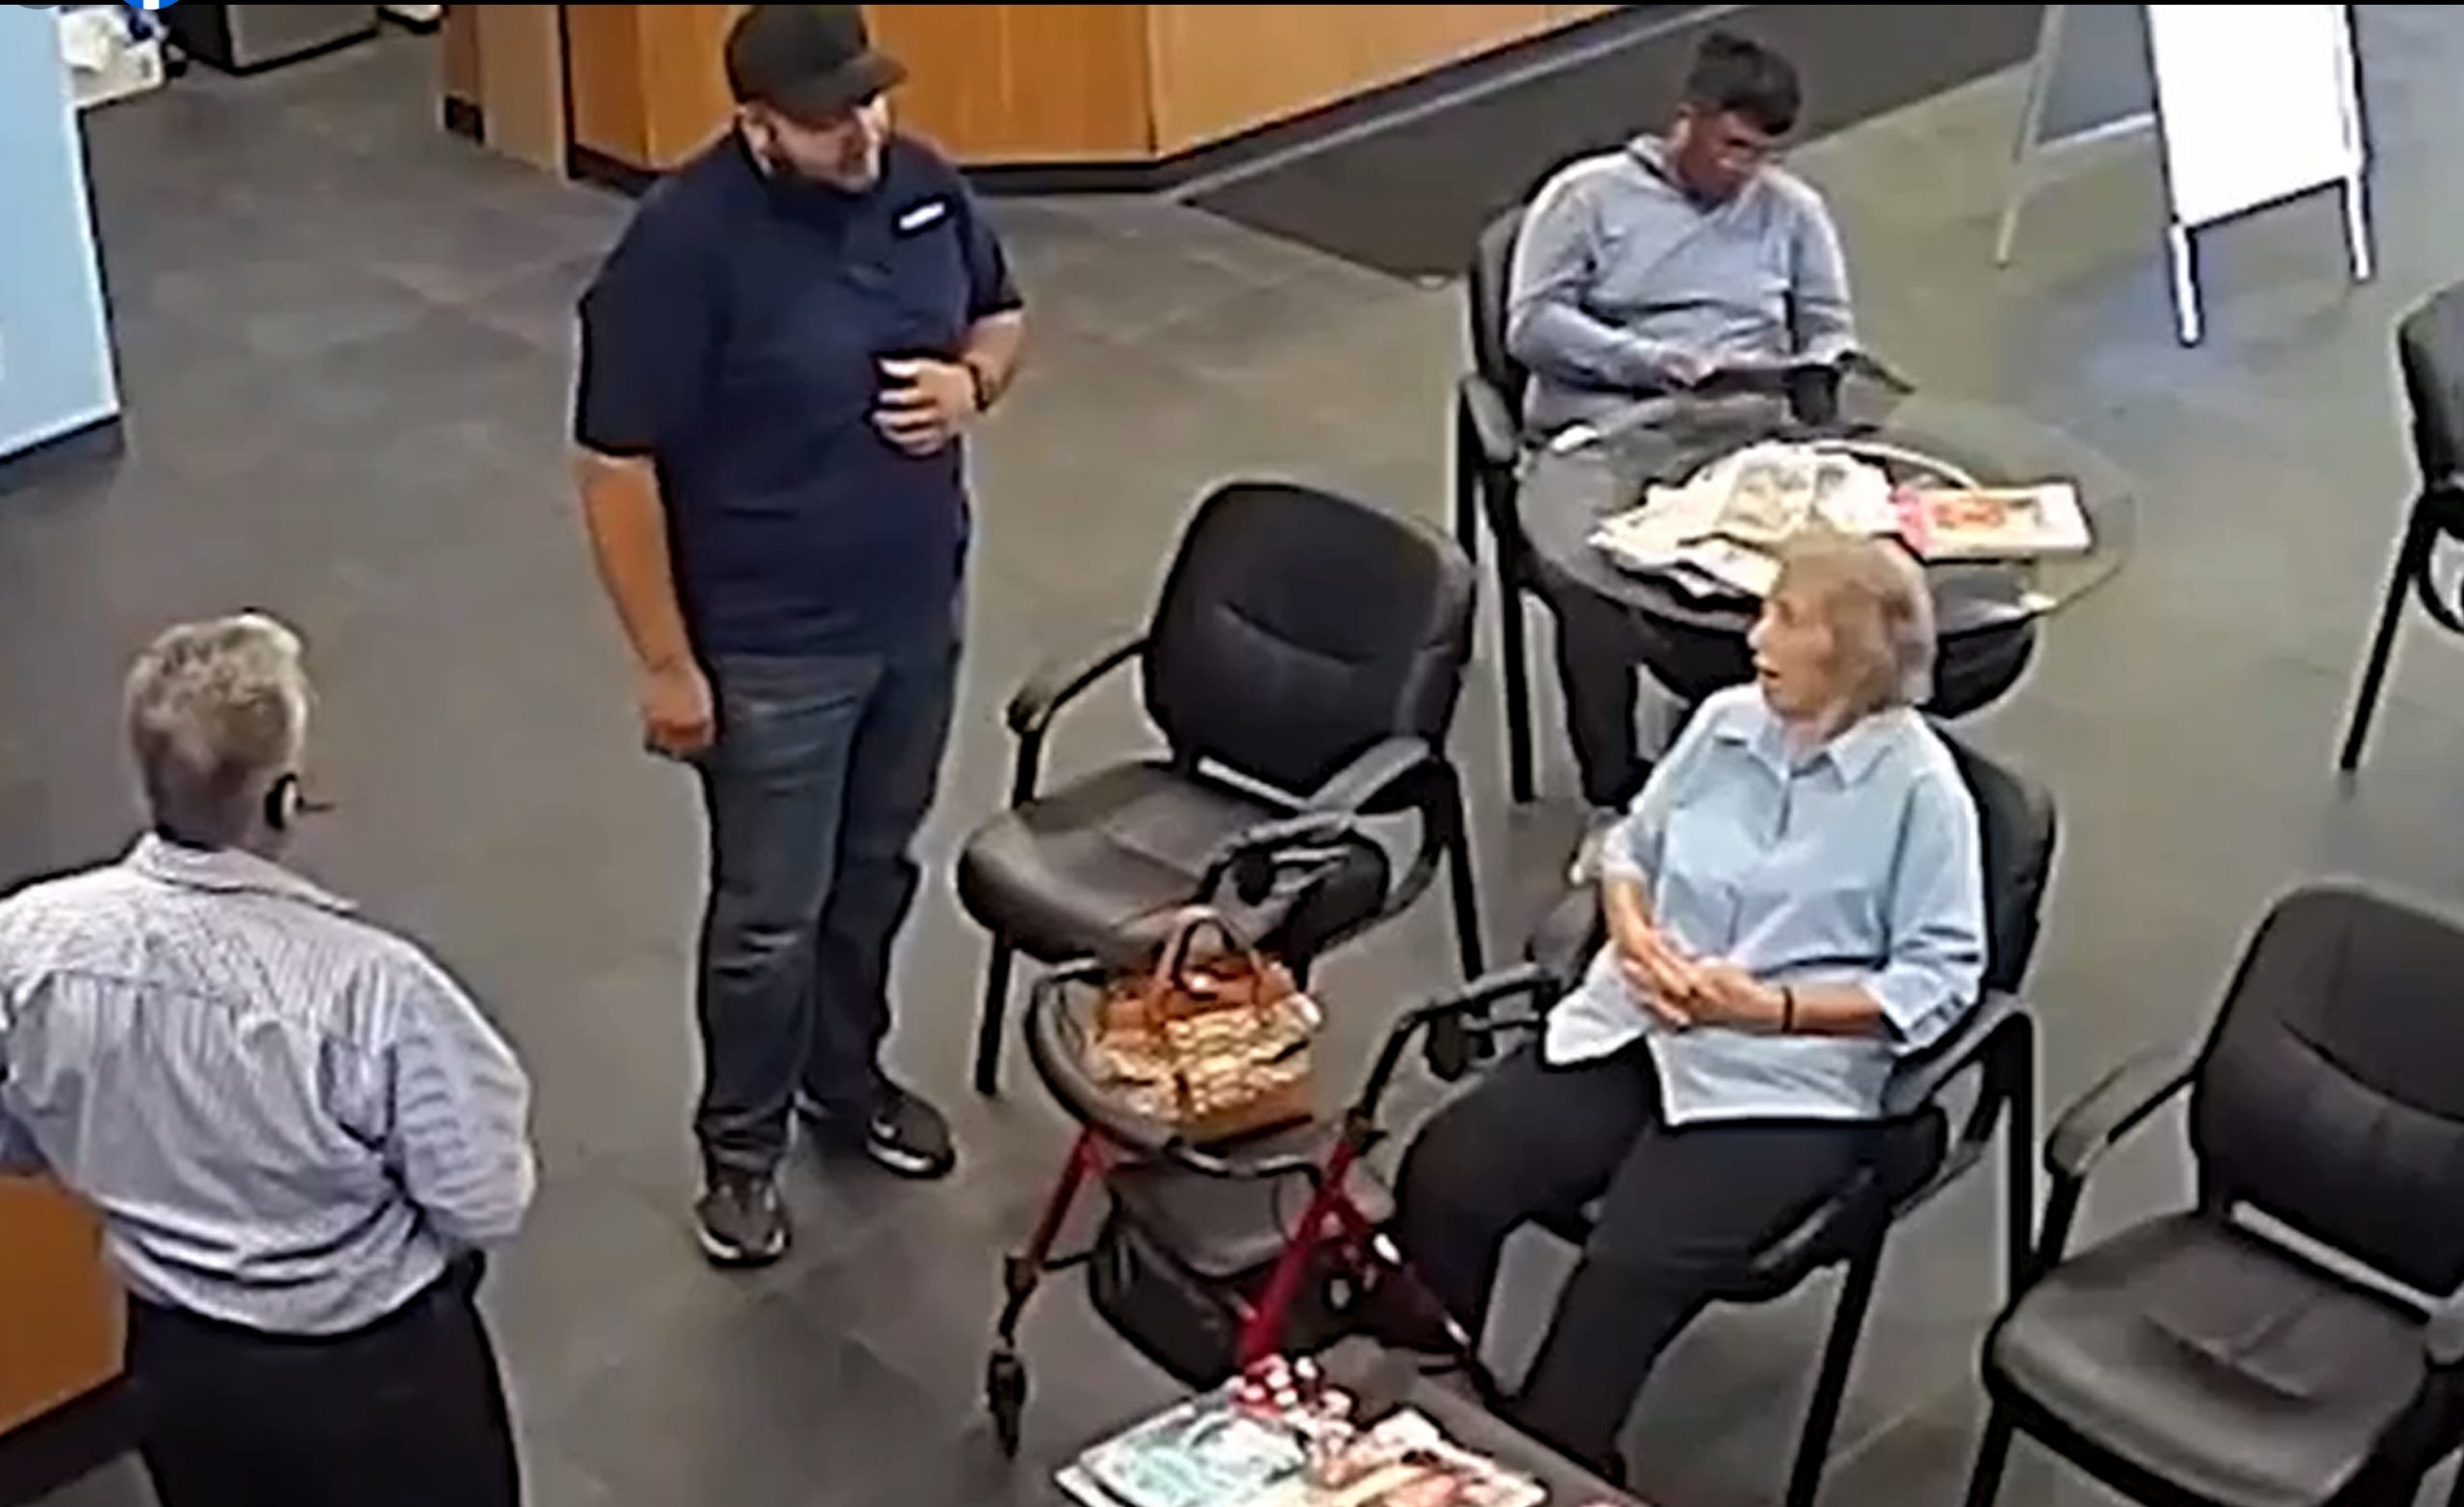 breaking the news to the elderly woman